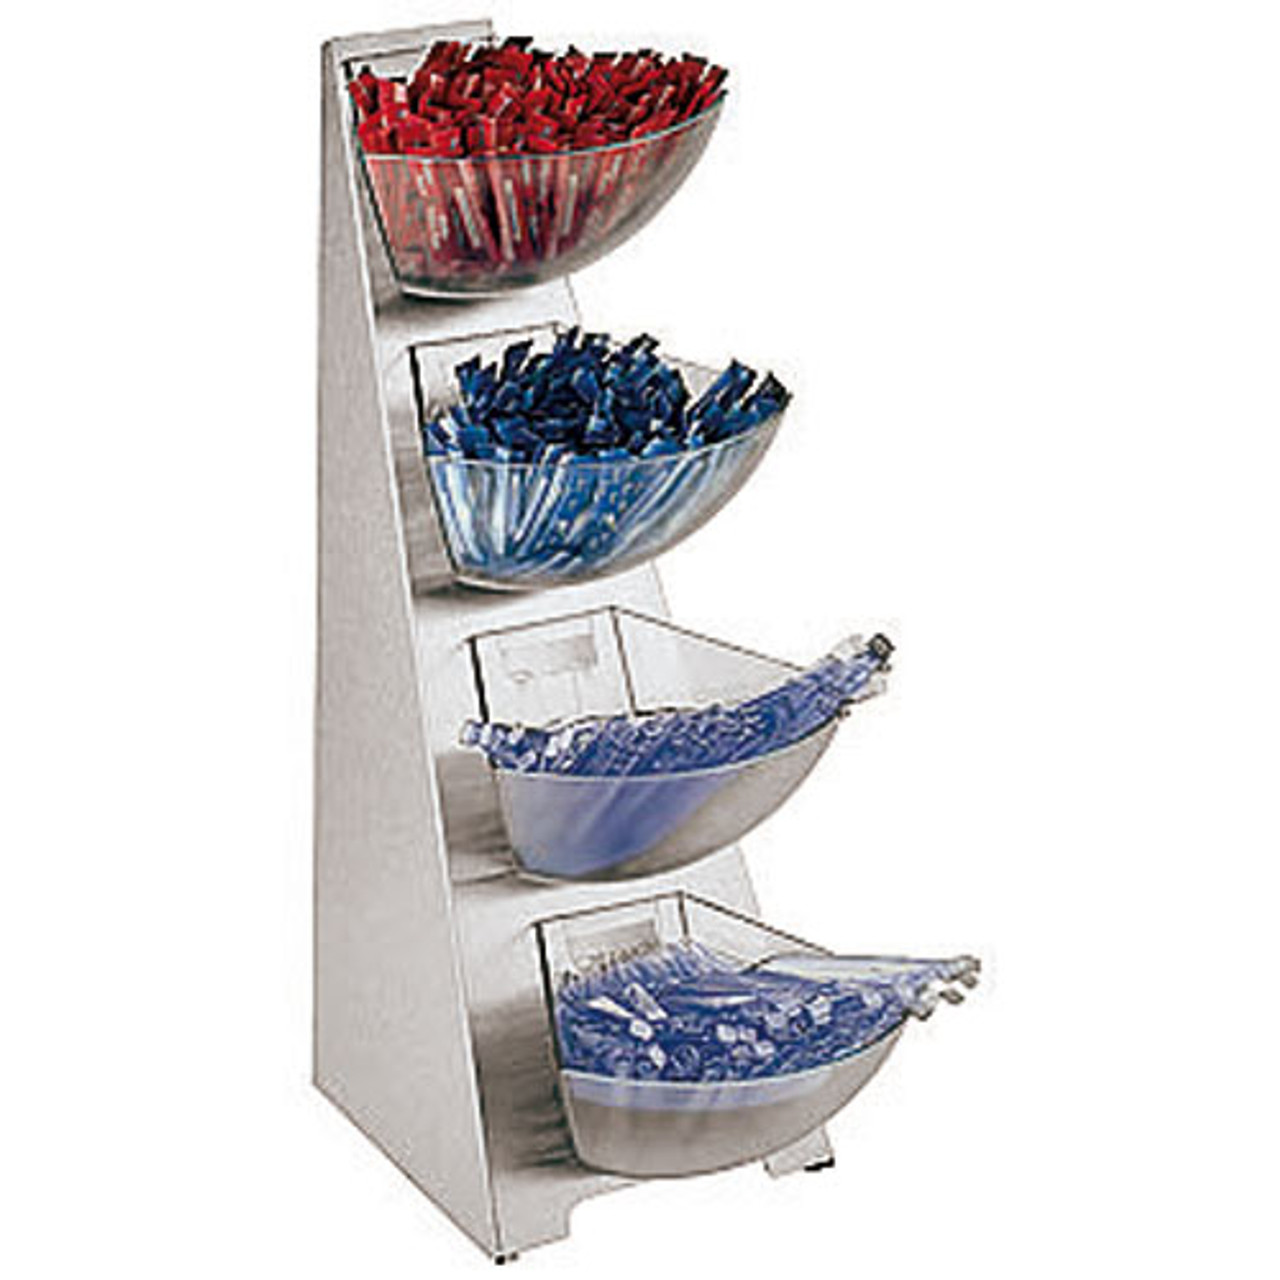 Four-compartment S/S Condiment Tower  Bins, L 9.5 x W 7.5 x H 20.875